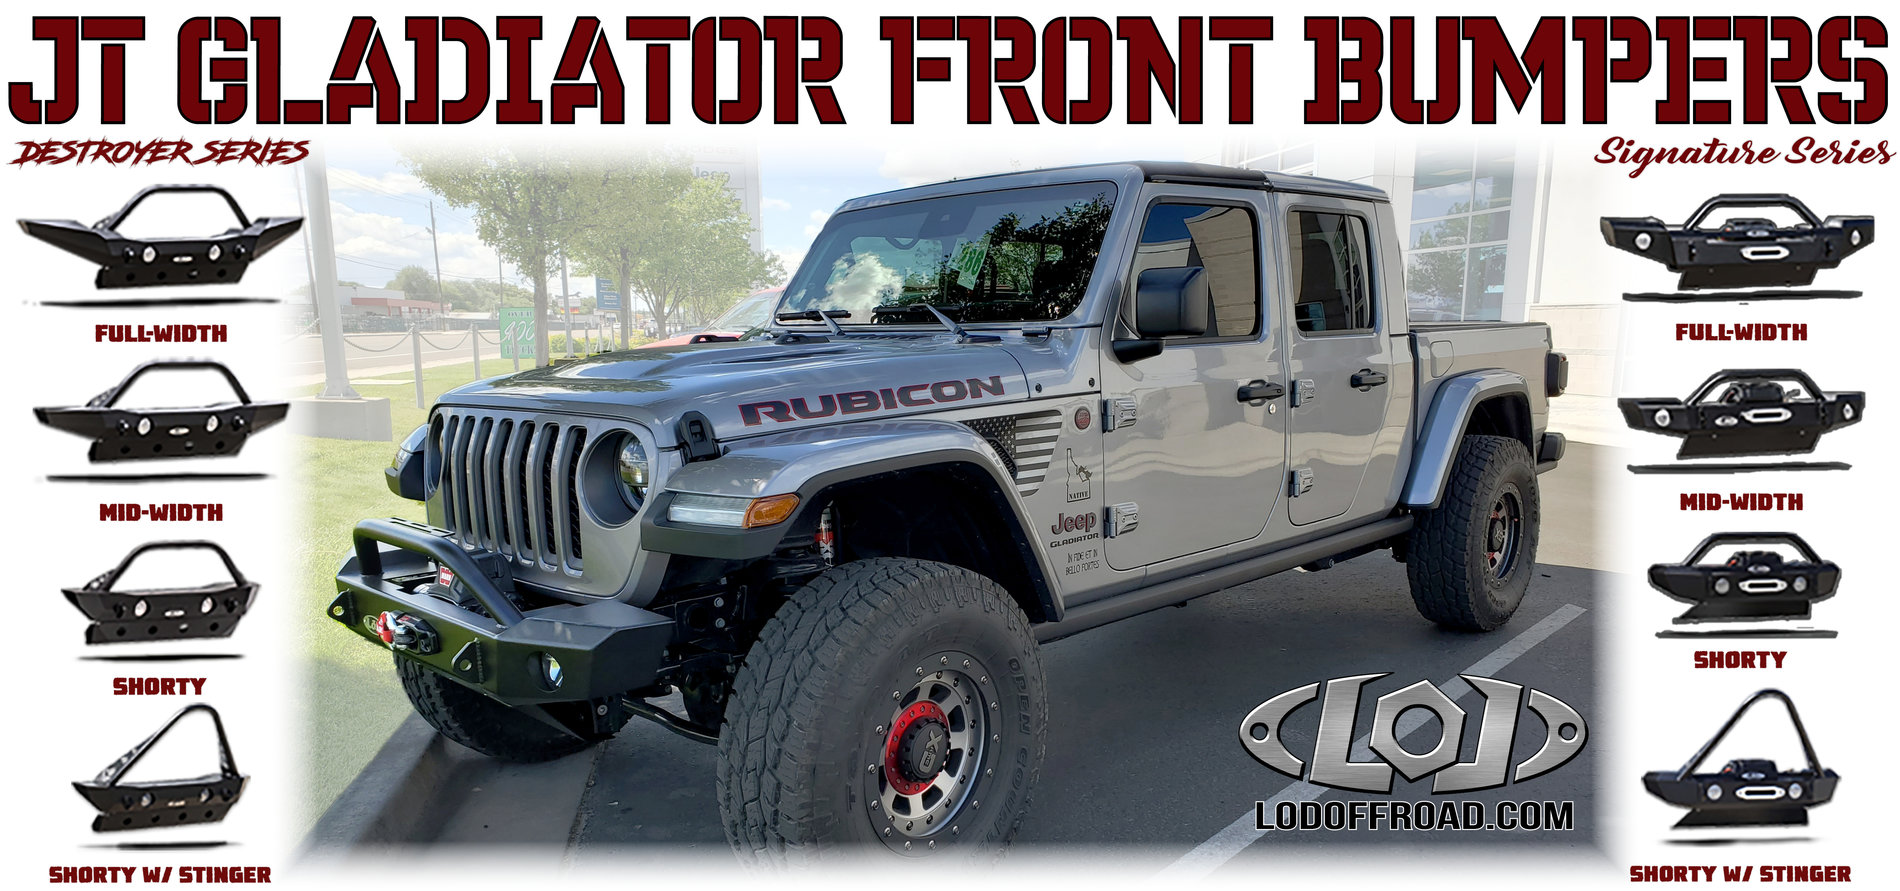 1920x900_gladiator front bumpers.jpg